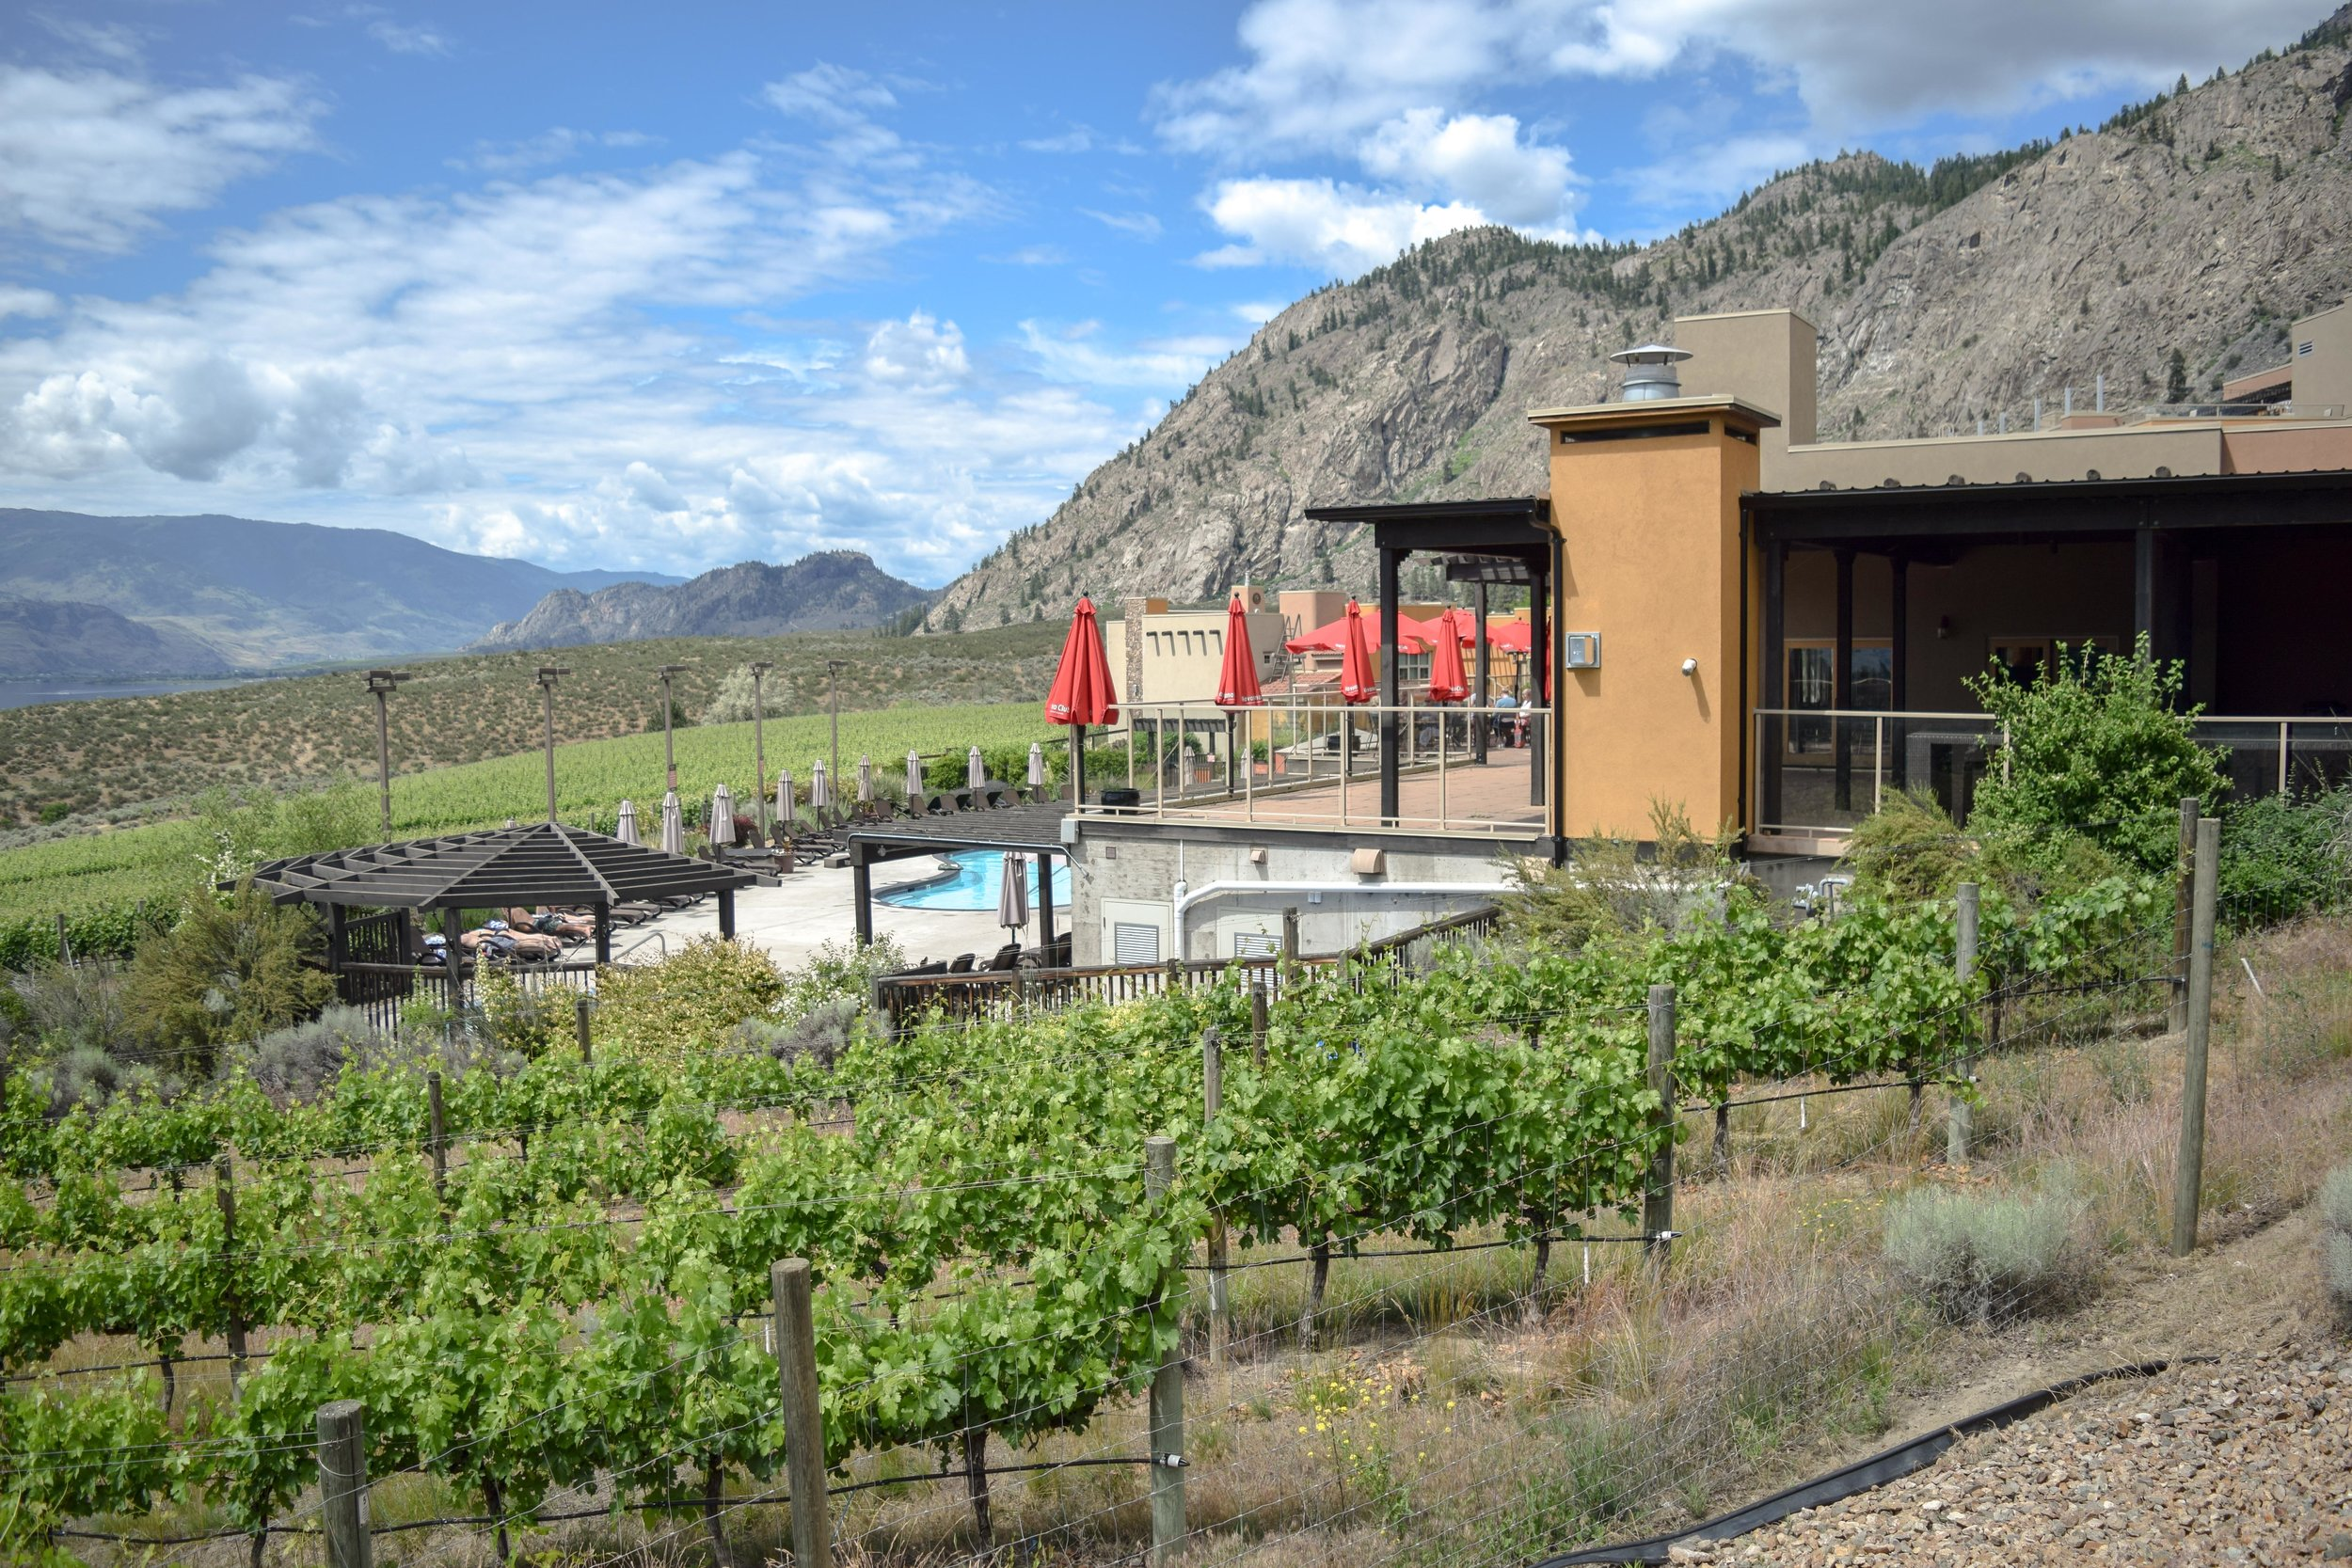 Spirit Ridge at Nk'Mip and vineyards